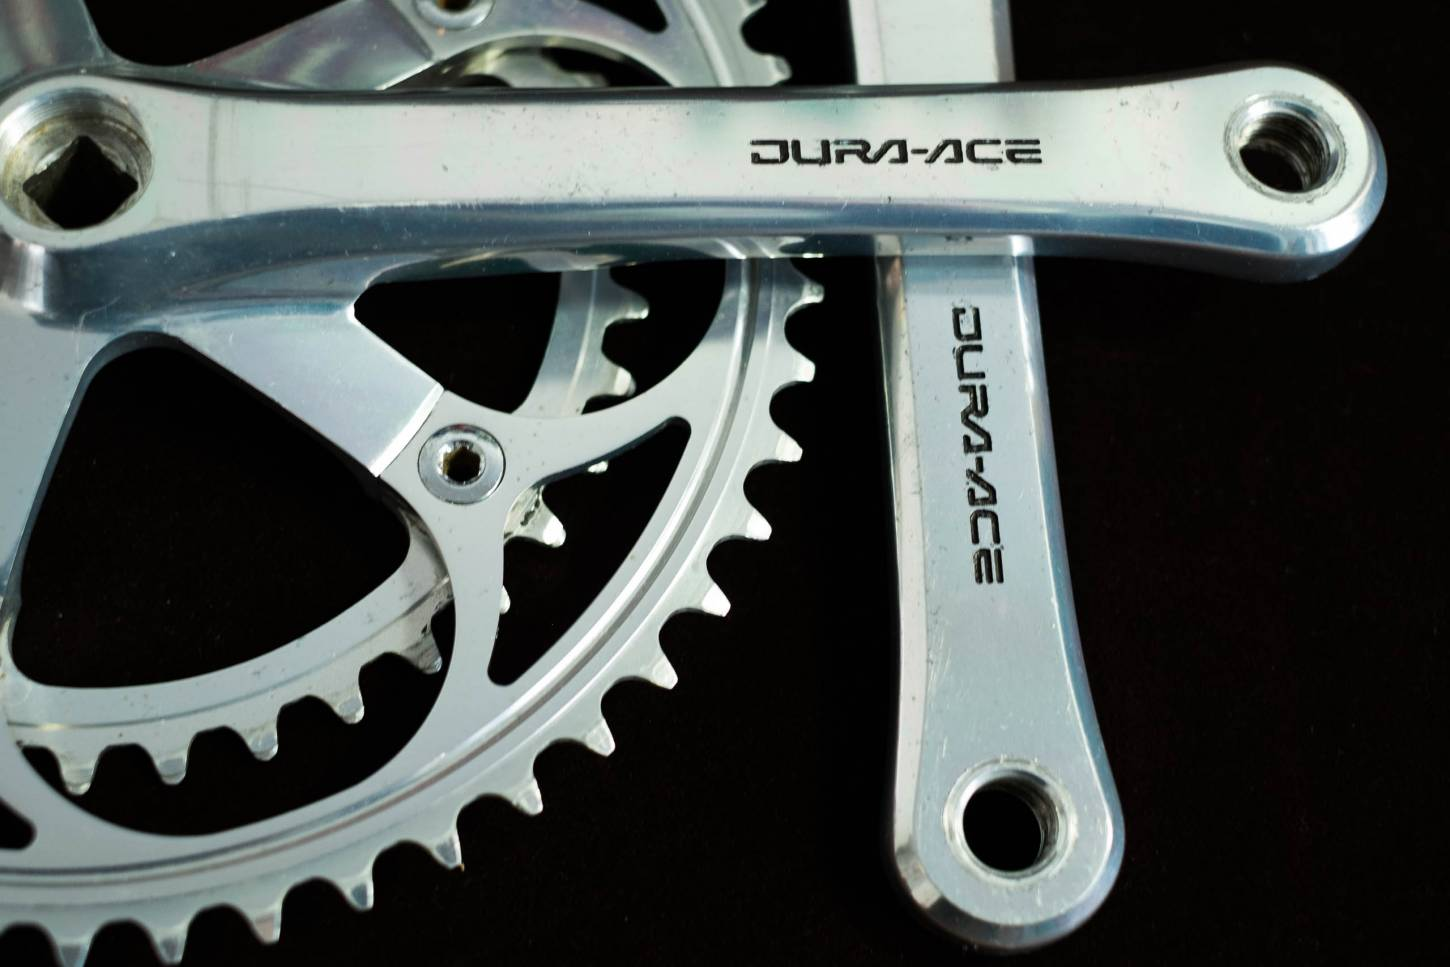 Pédalier Shimano Dura Ace FC-7402 170 mm 2 compartiments 52/39 dents 130 LK Vintage Road Bike